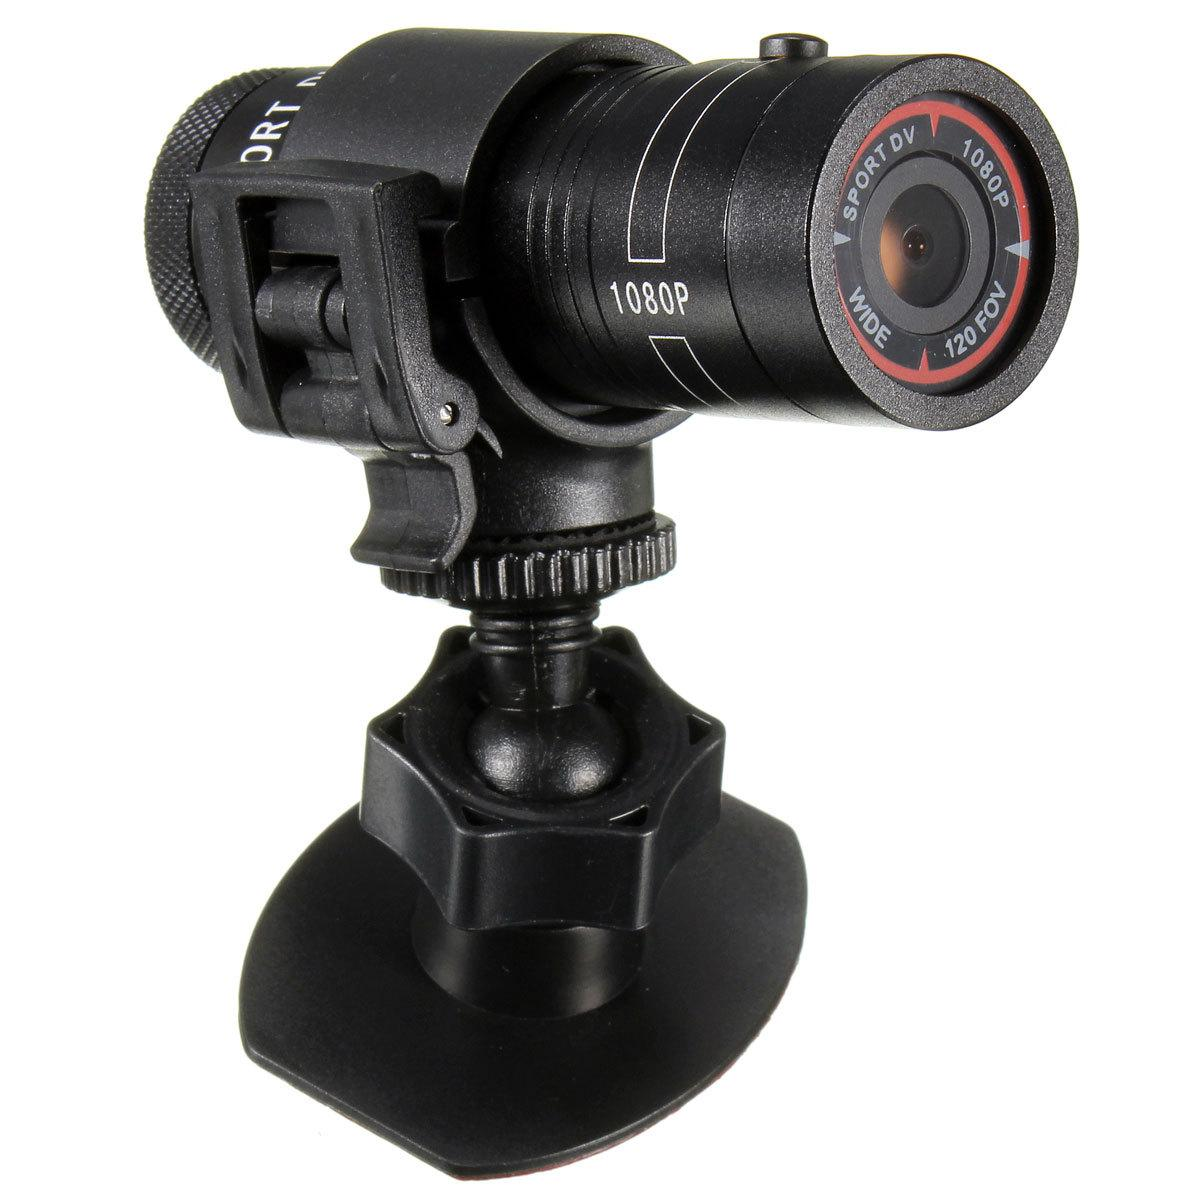 Full hd 1080p round sports camera for bicycle motor cycle for Camera and camera